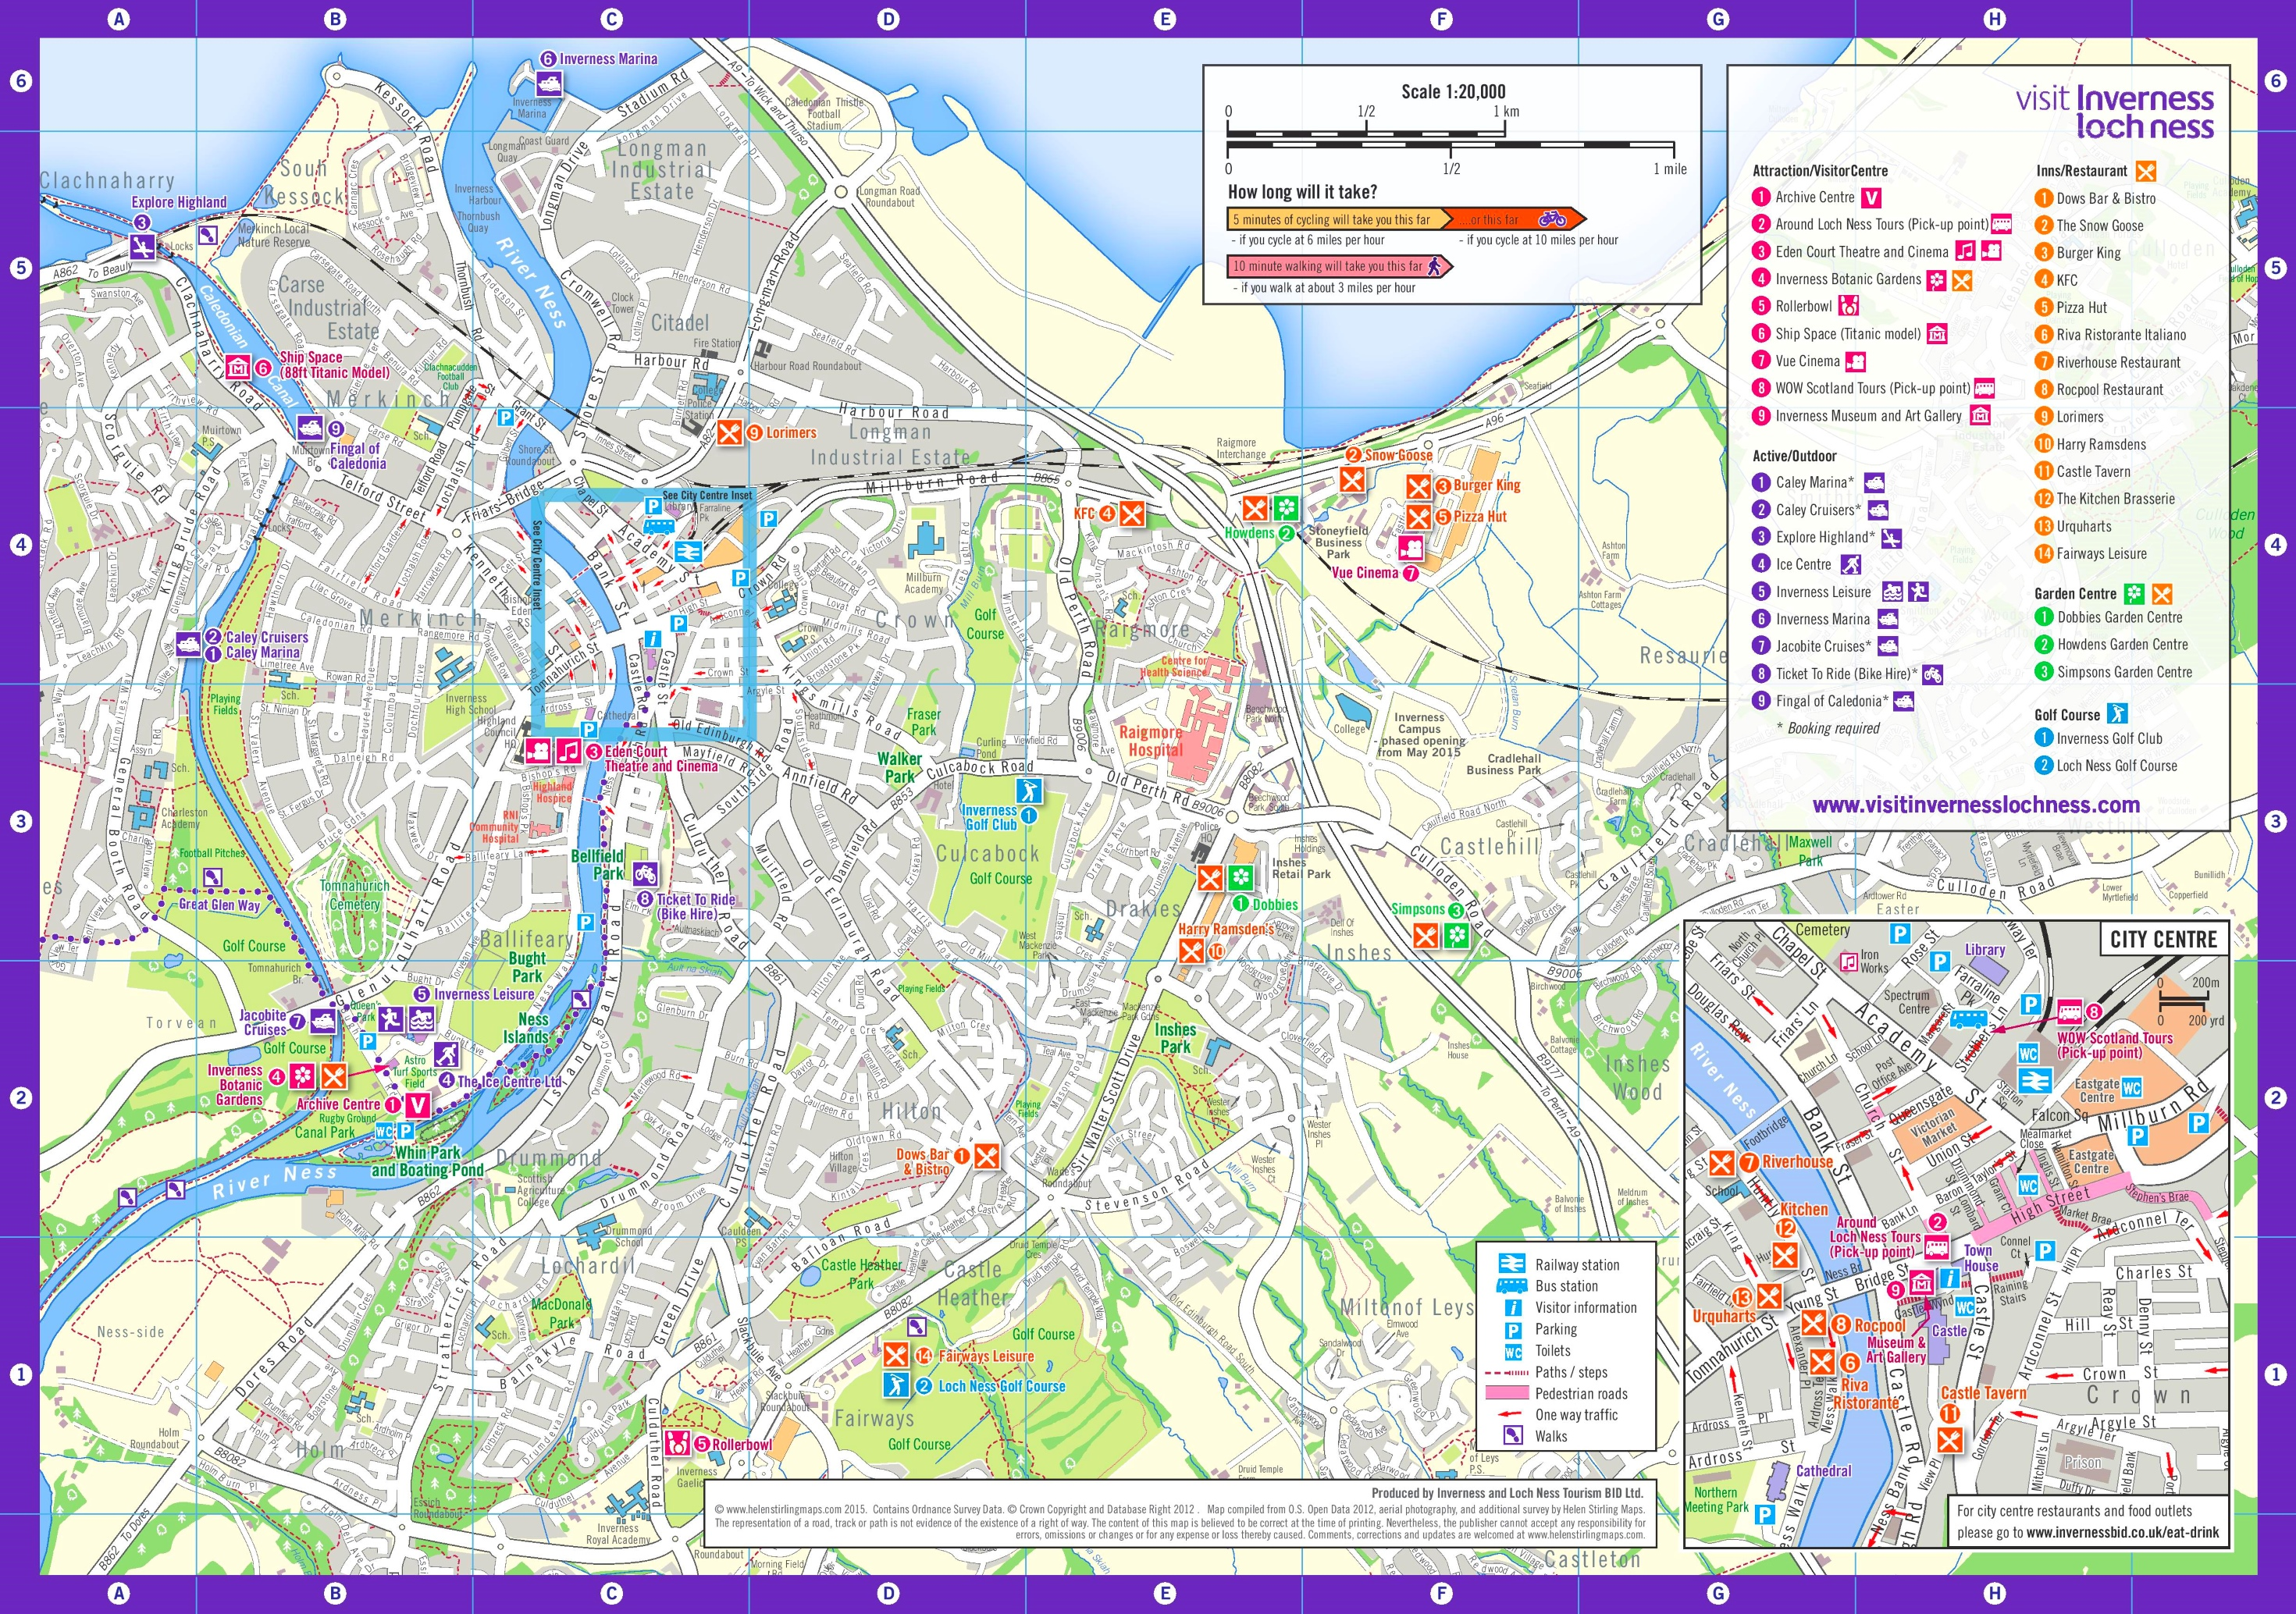 Map Of Inverness Inverness sightseeing map